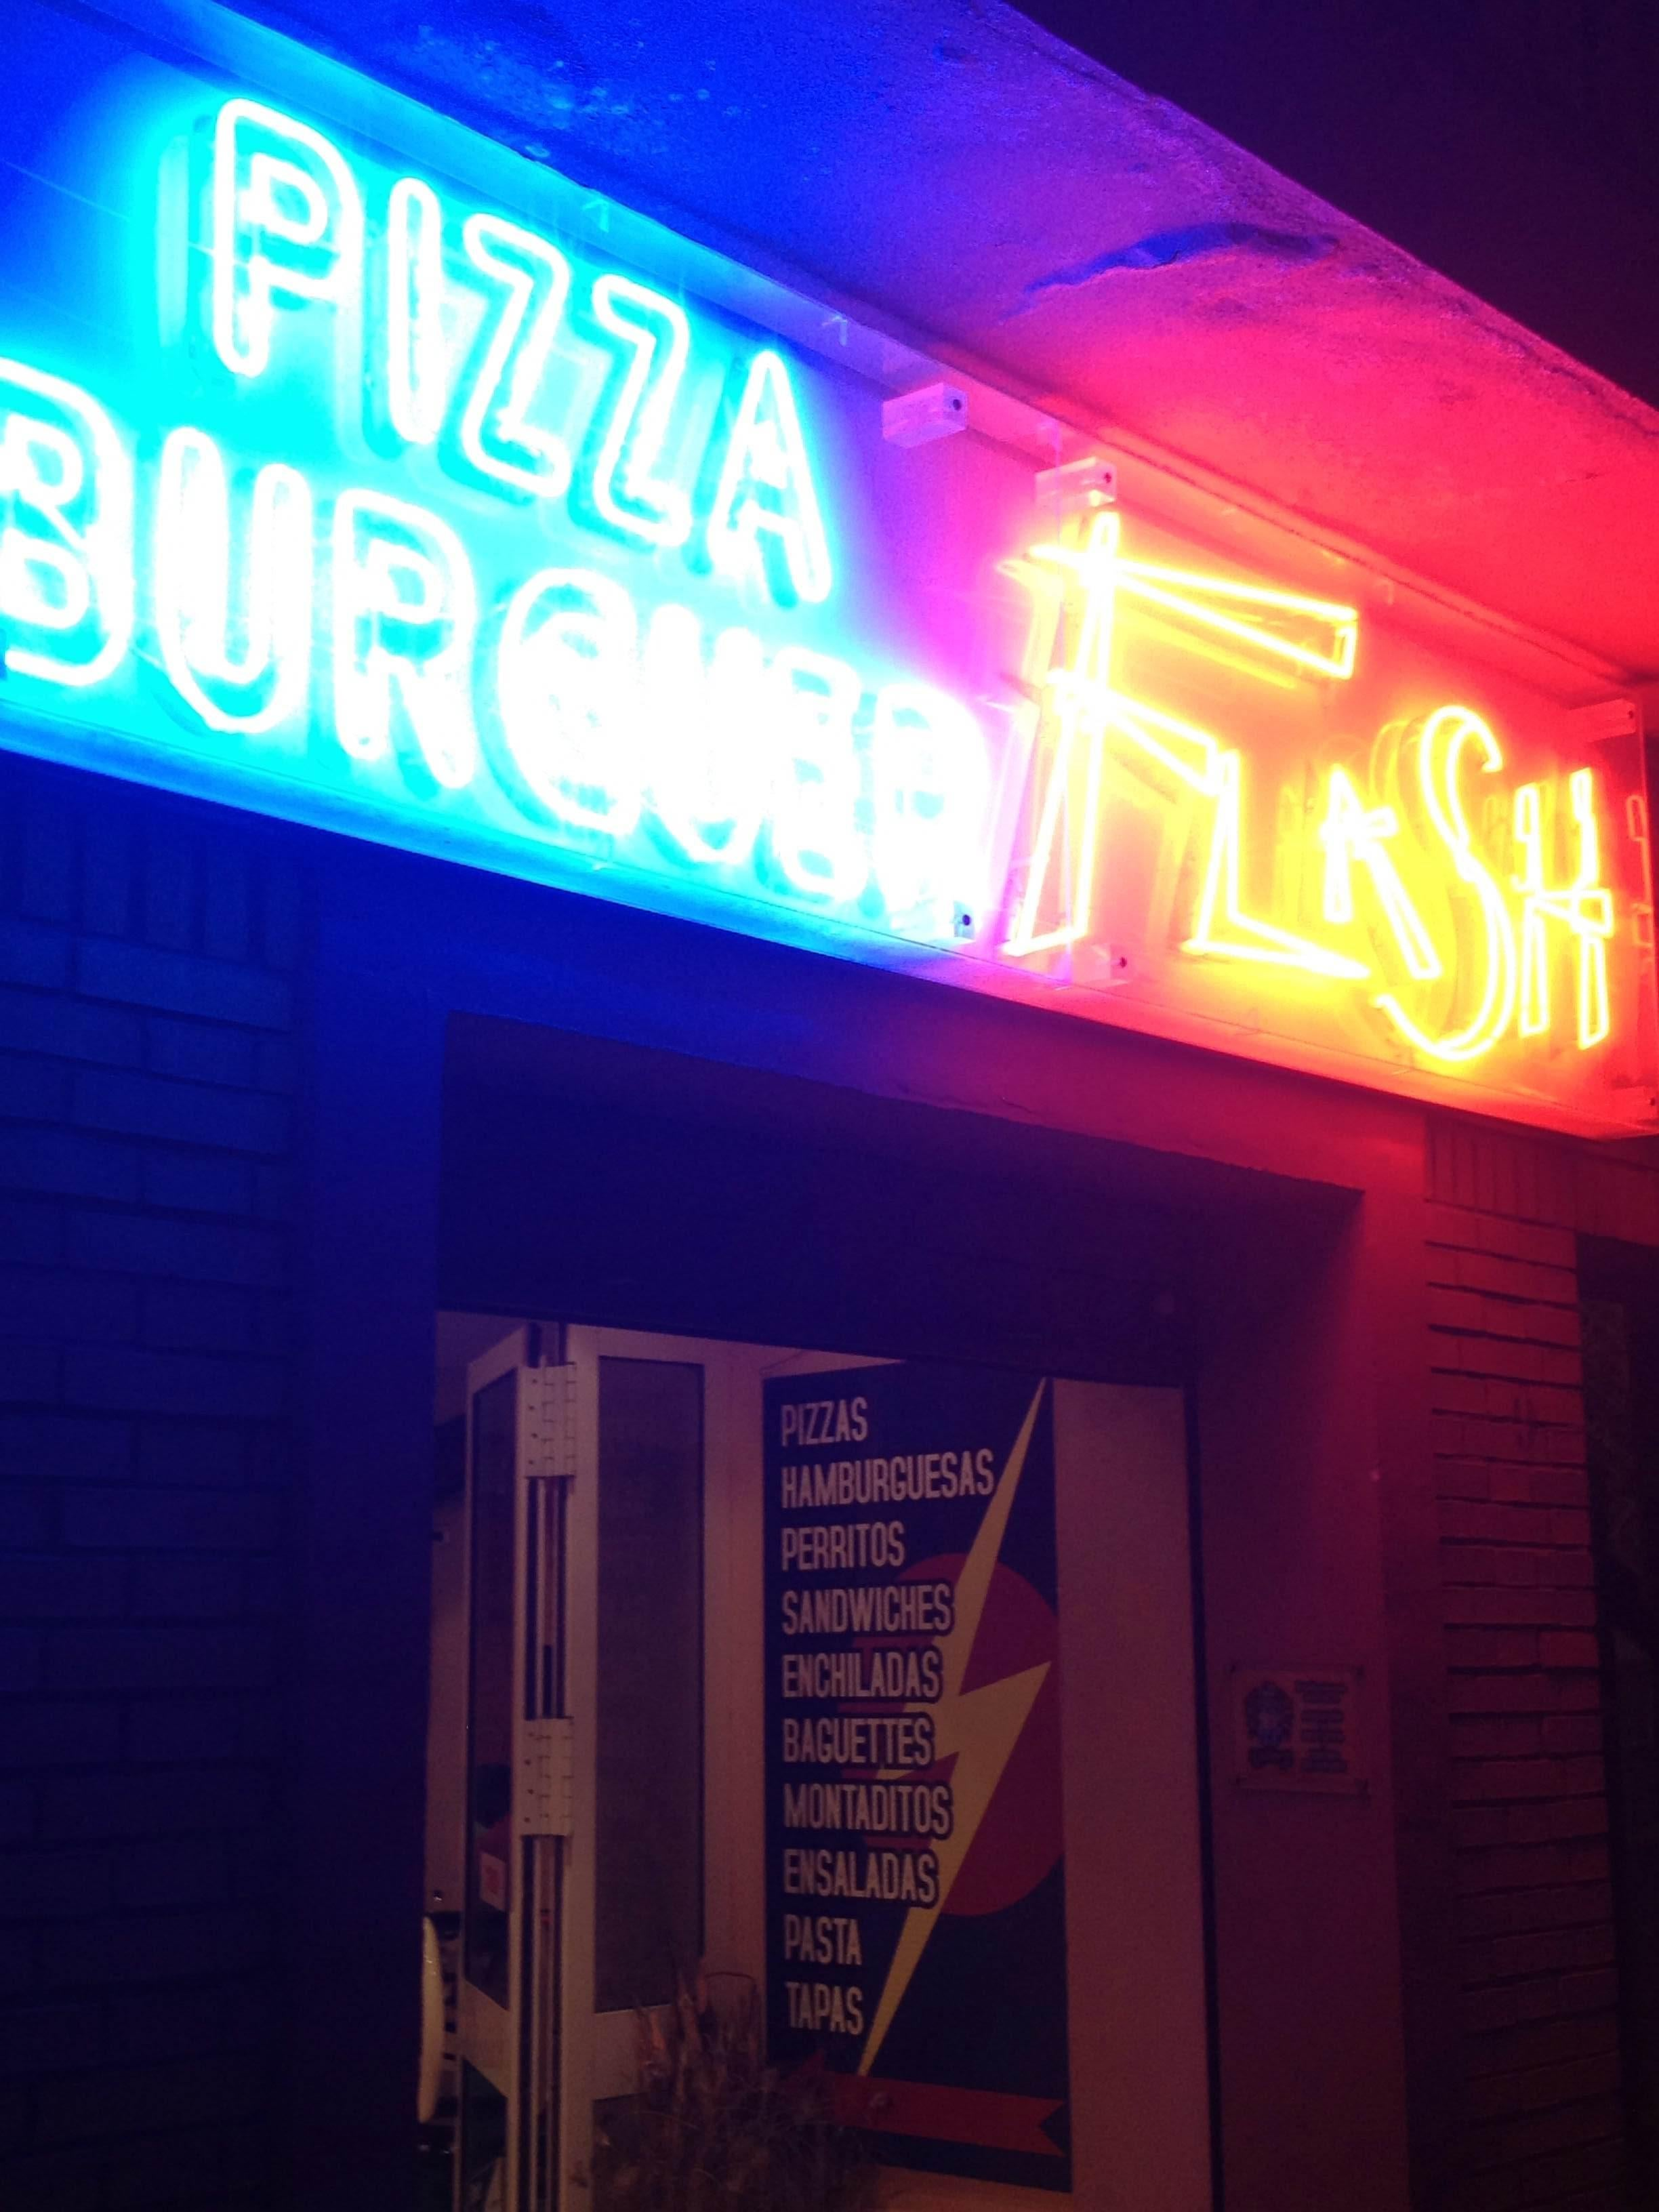 Pizza Burguer Flash